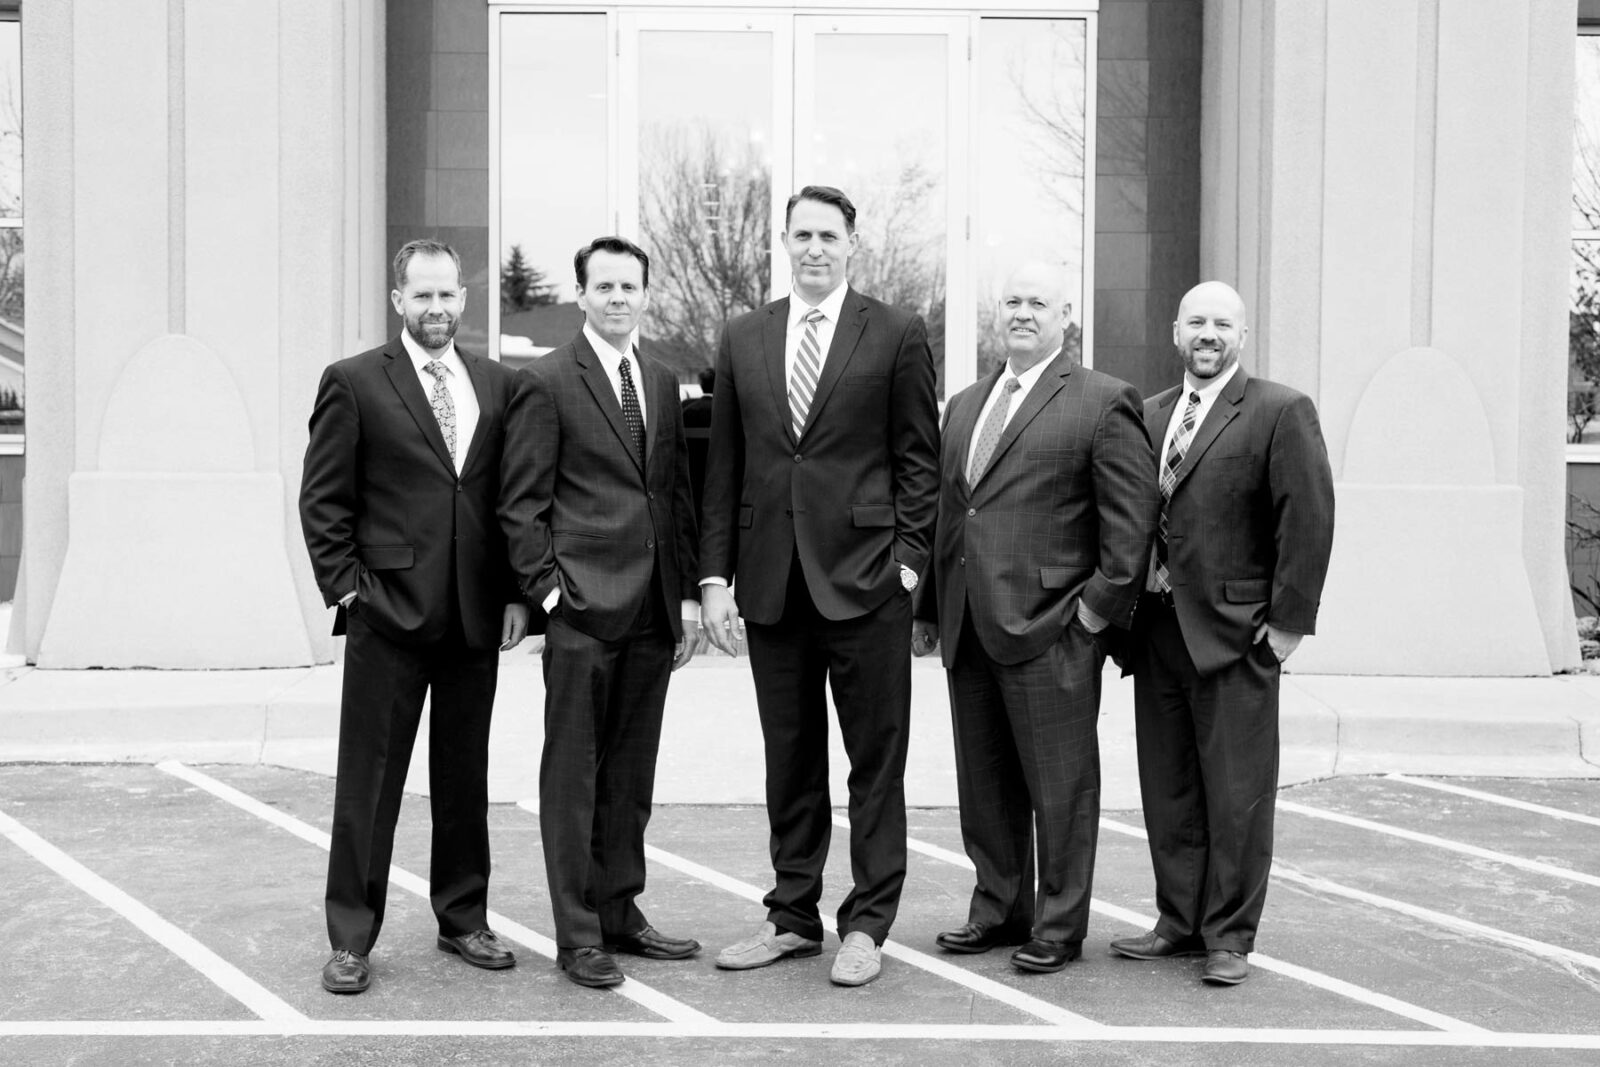 Flickinger-Sutterfield-&_Boulton-Personal-Injury-Lawyers-Utah-Team